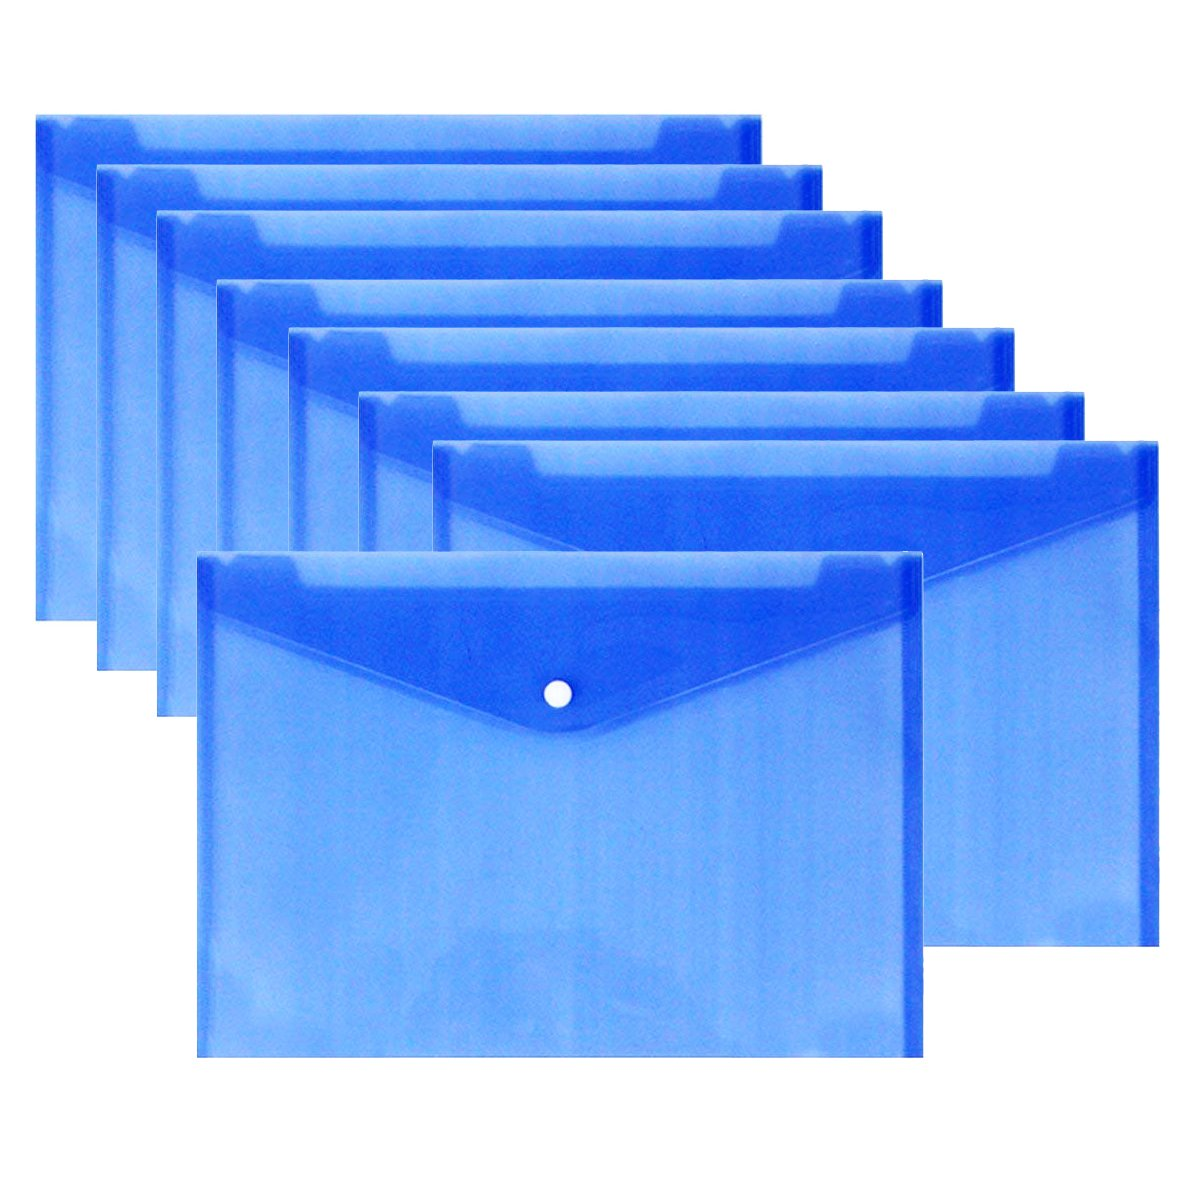 Warmter Poly Envelopes Clear Folder Plastic Clear Folders Clear Document Folder with Snap Button US Letter/A4 Size Set of 12 Blue